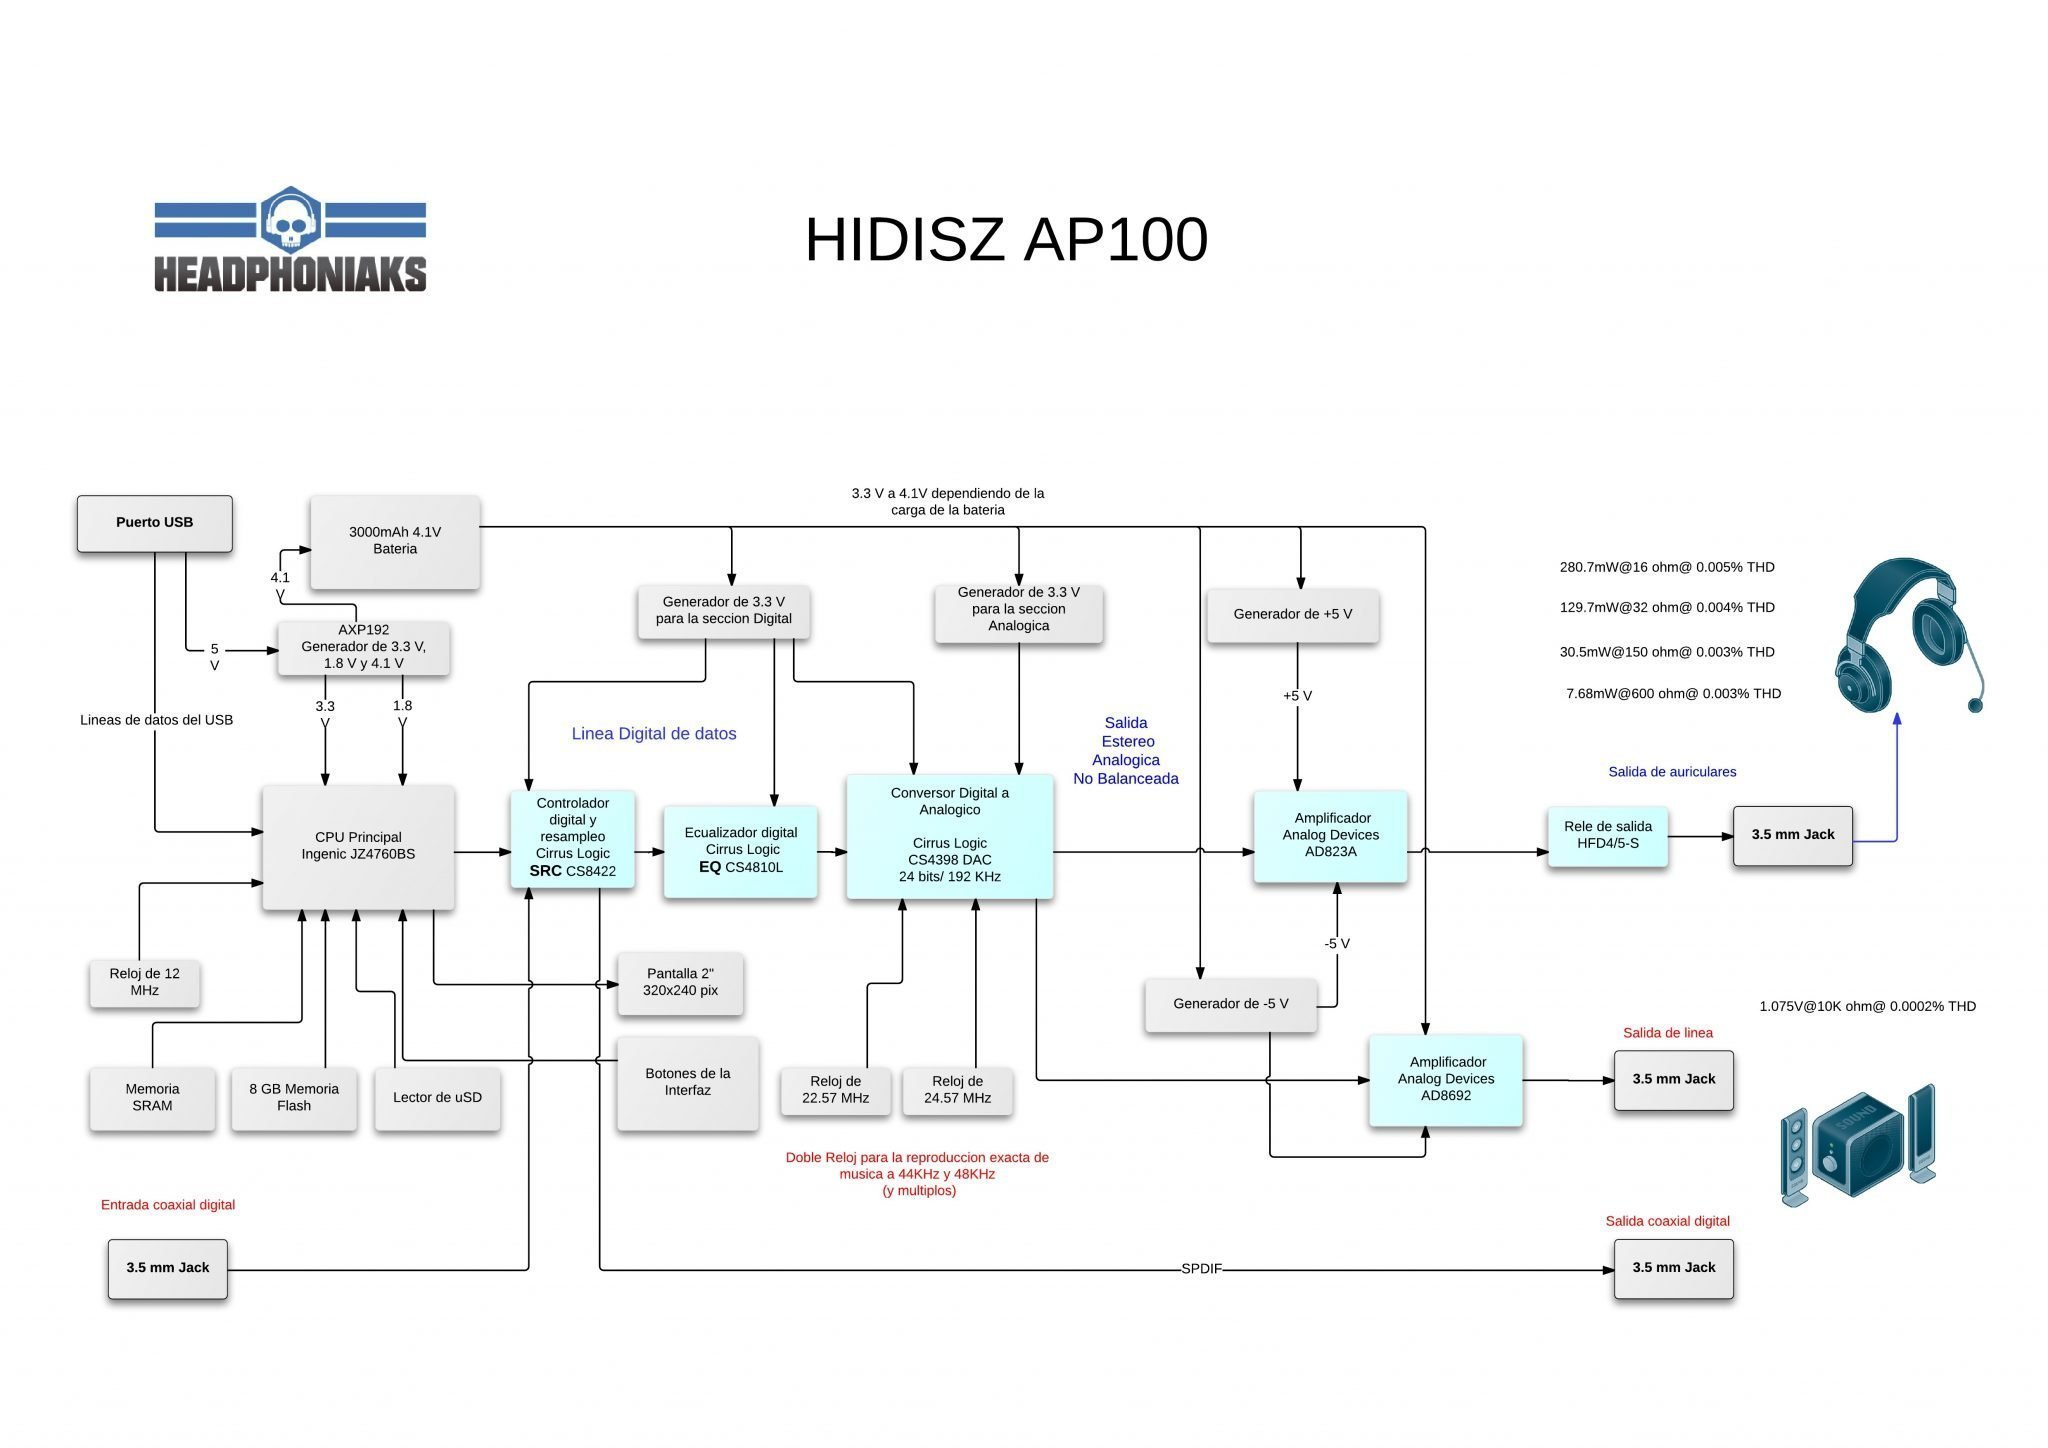 Fig 3 HIDISZ AP100 Review HW Block